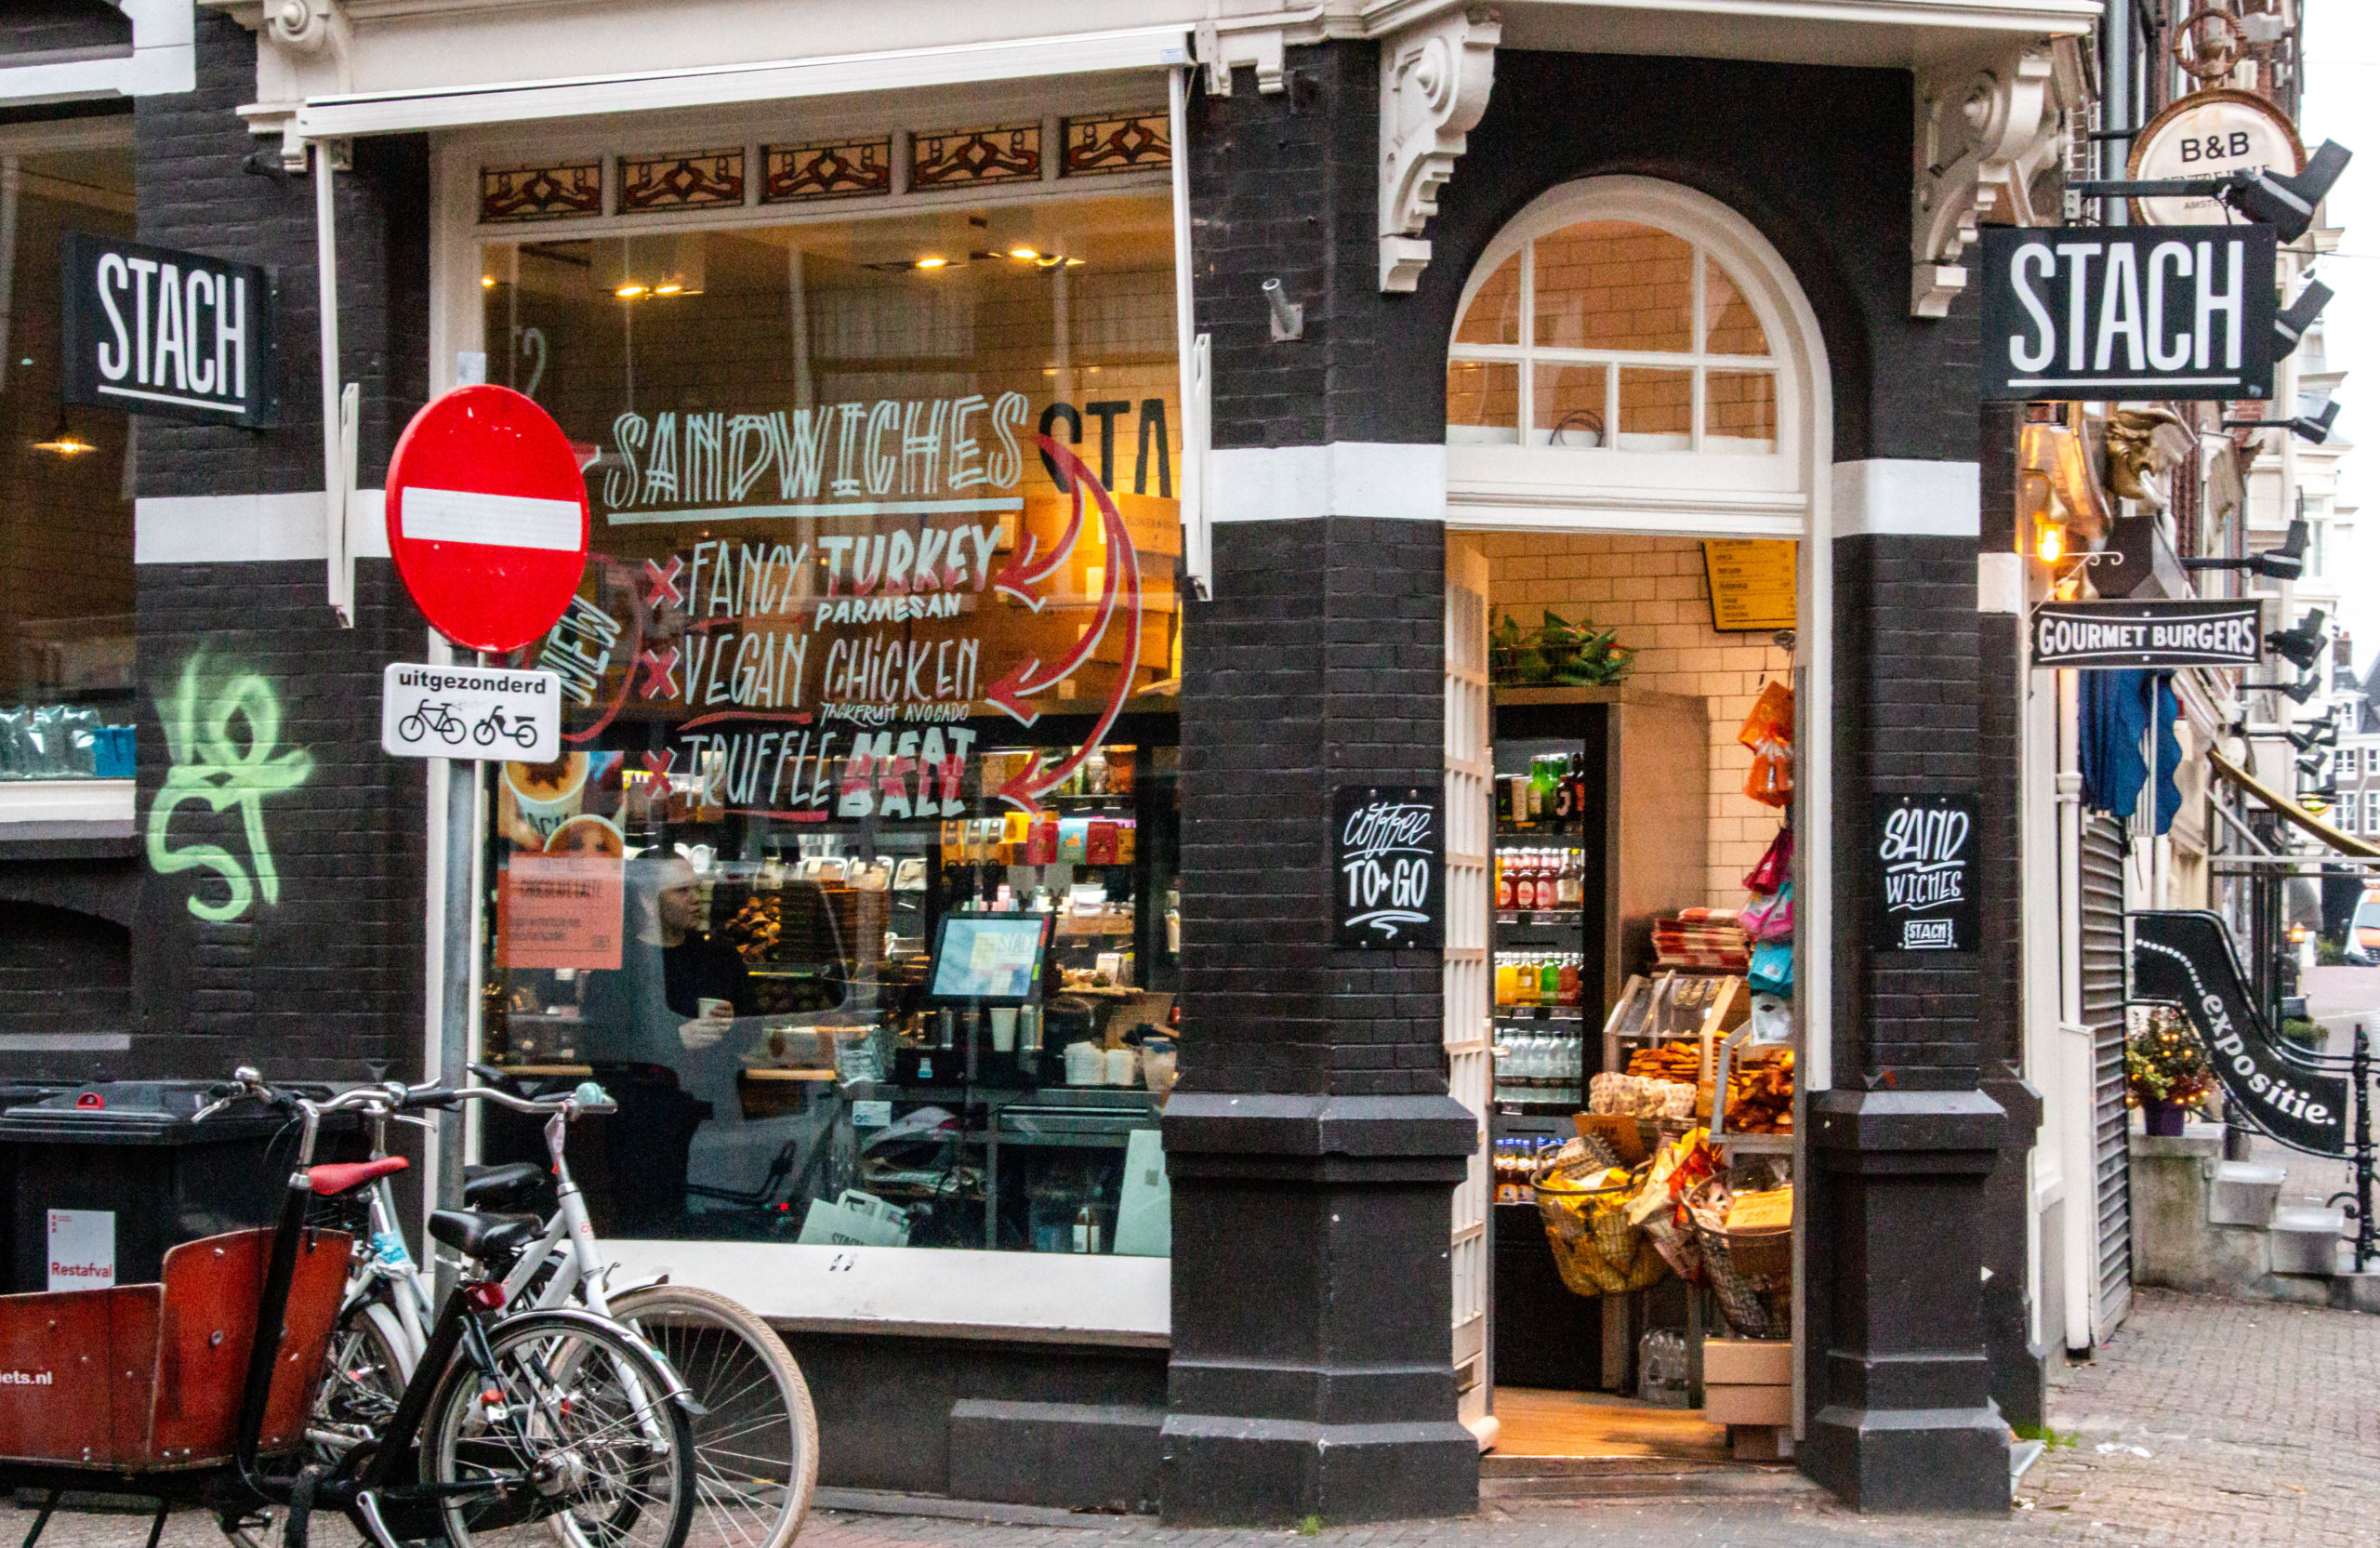 Where to Find Affordable Vegan Food in Amsterdam, www.roadsanddestinations.com